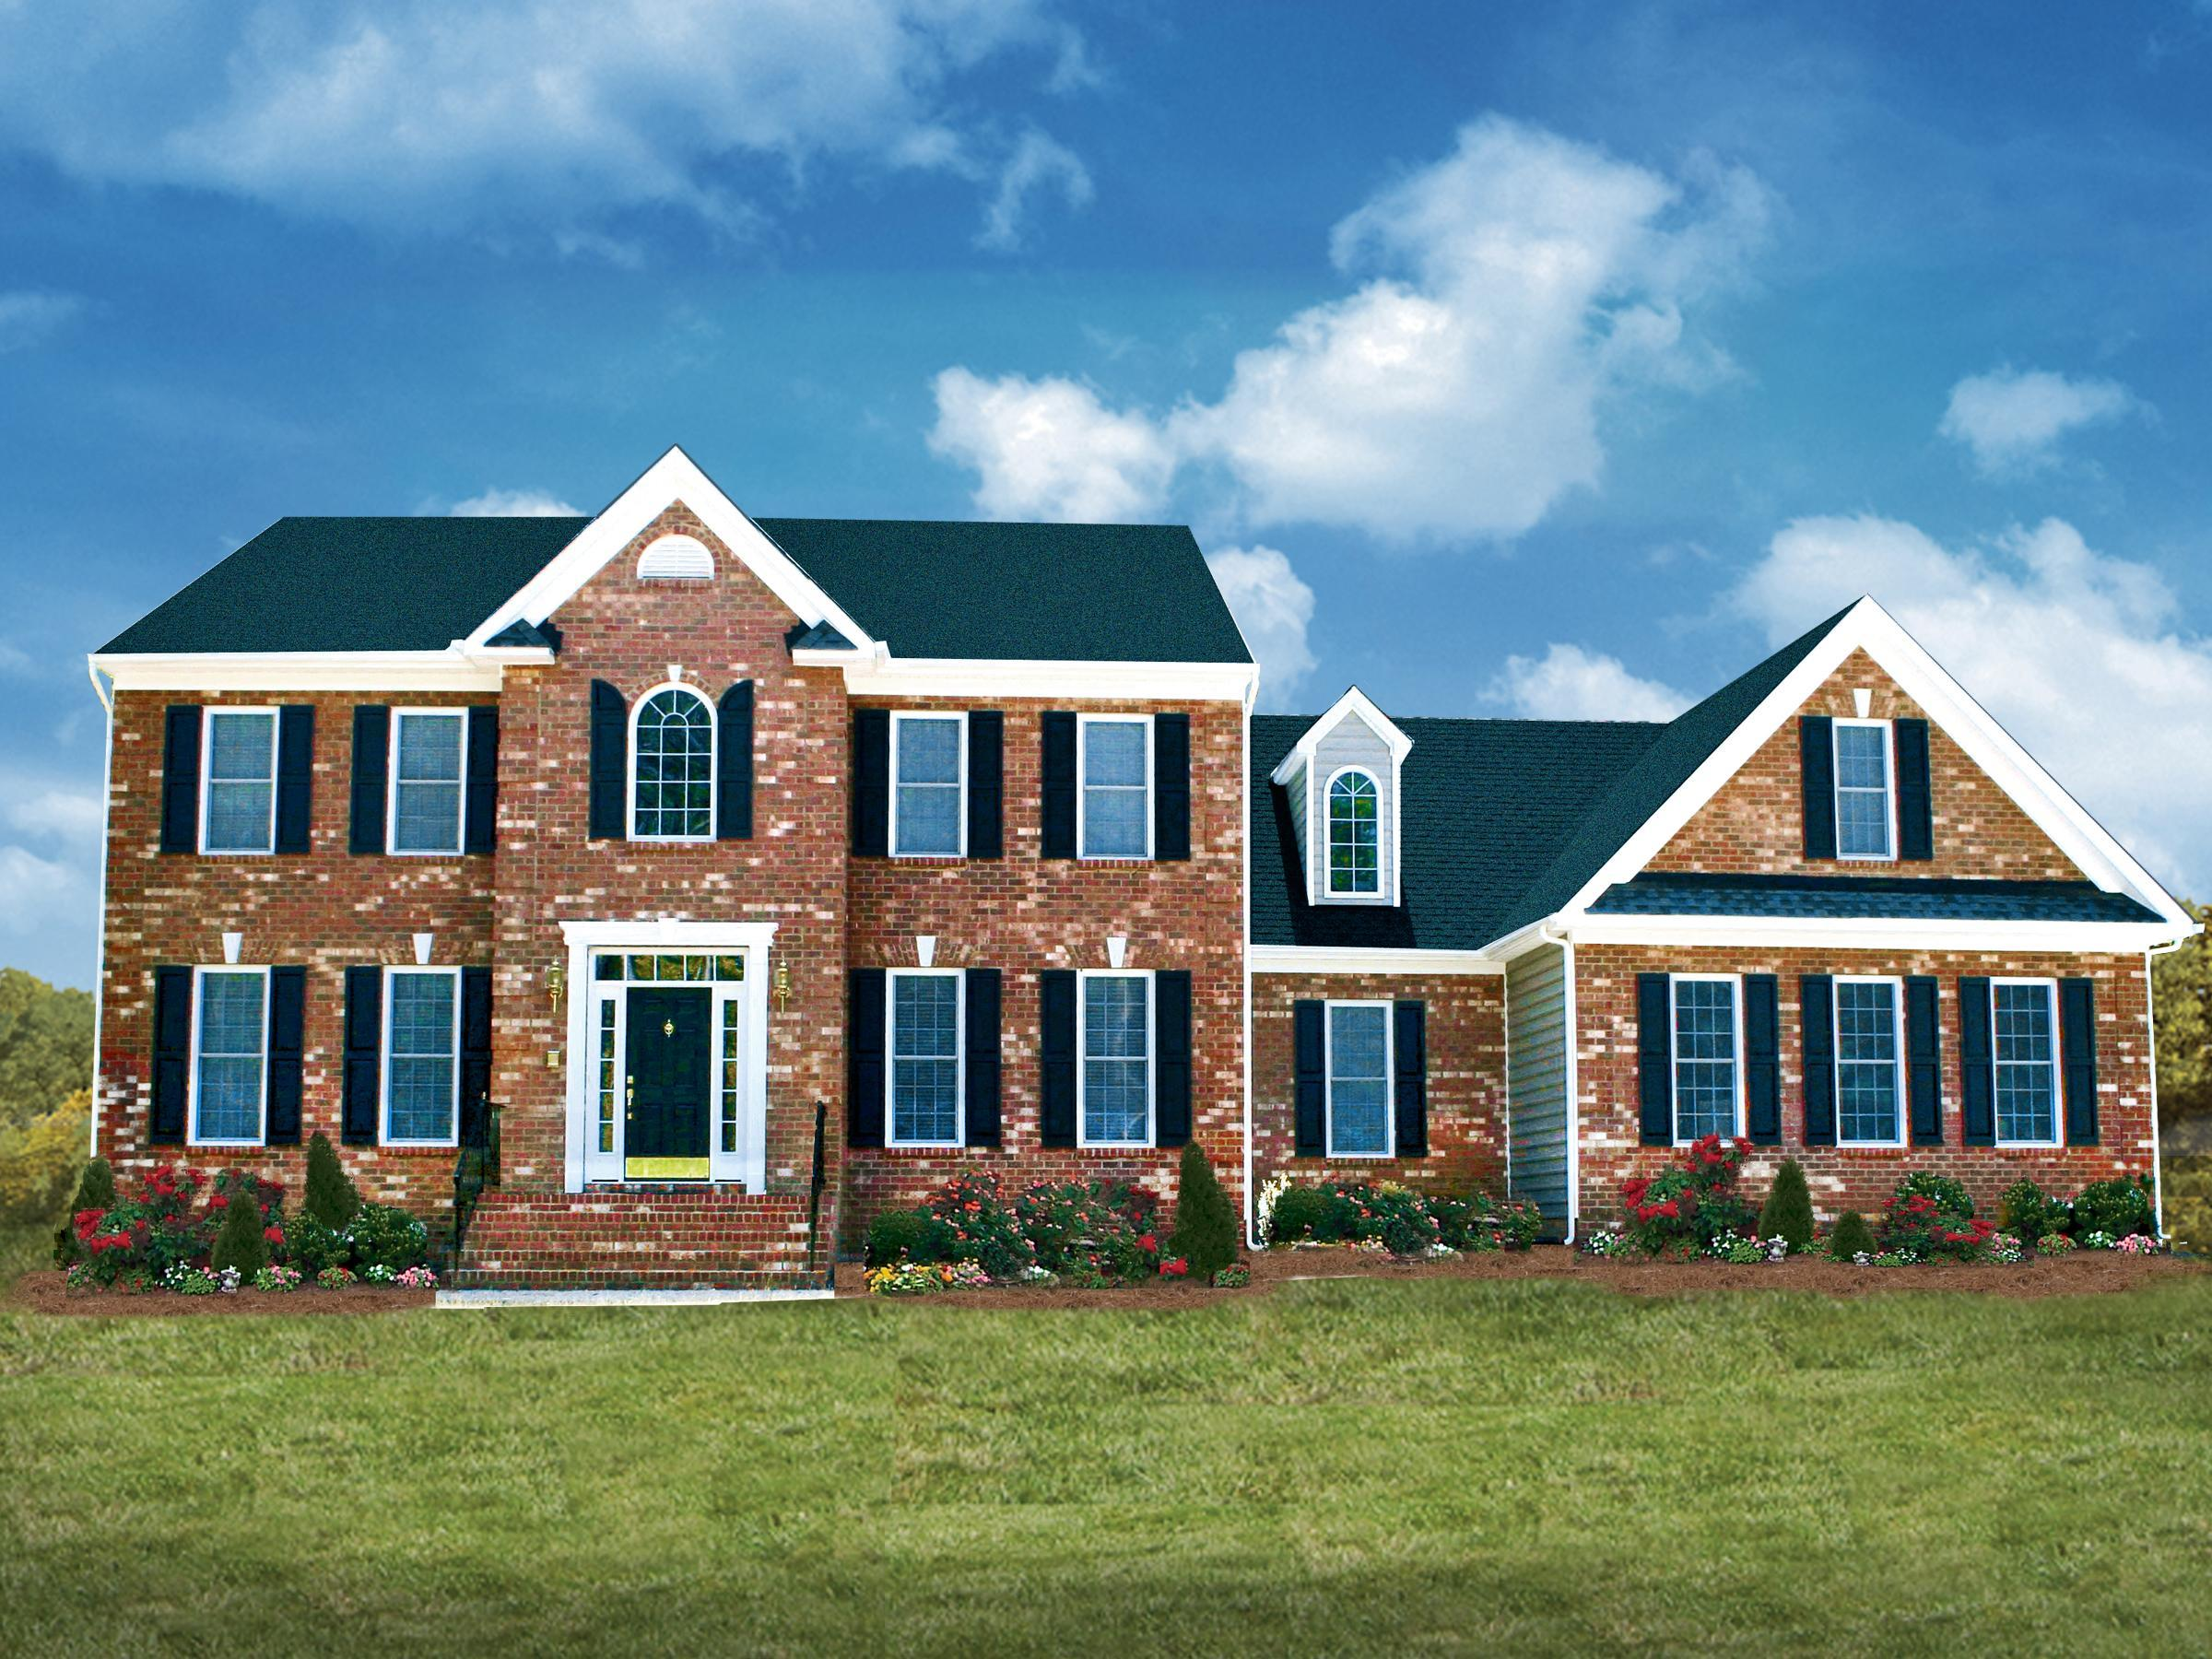 Lockridge Homes - Build On Your Lot - Fayetteville, Statesville, NC Homes & Land - Real Estate